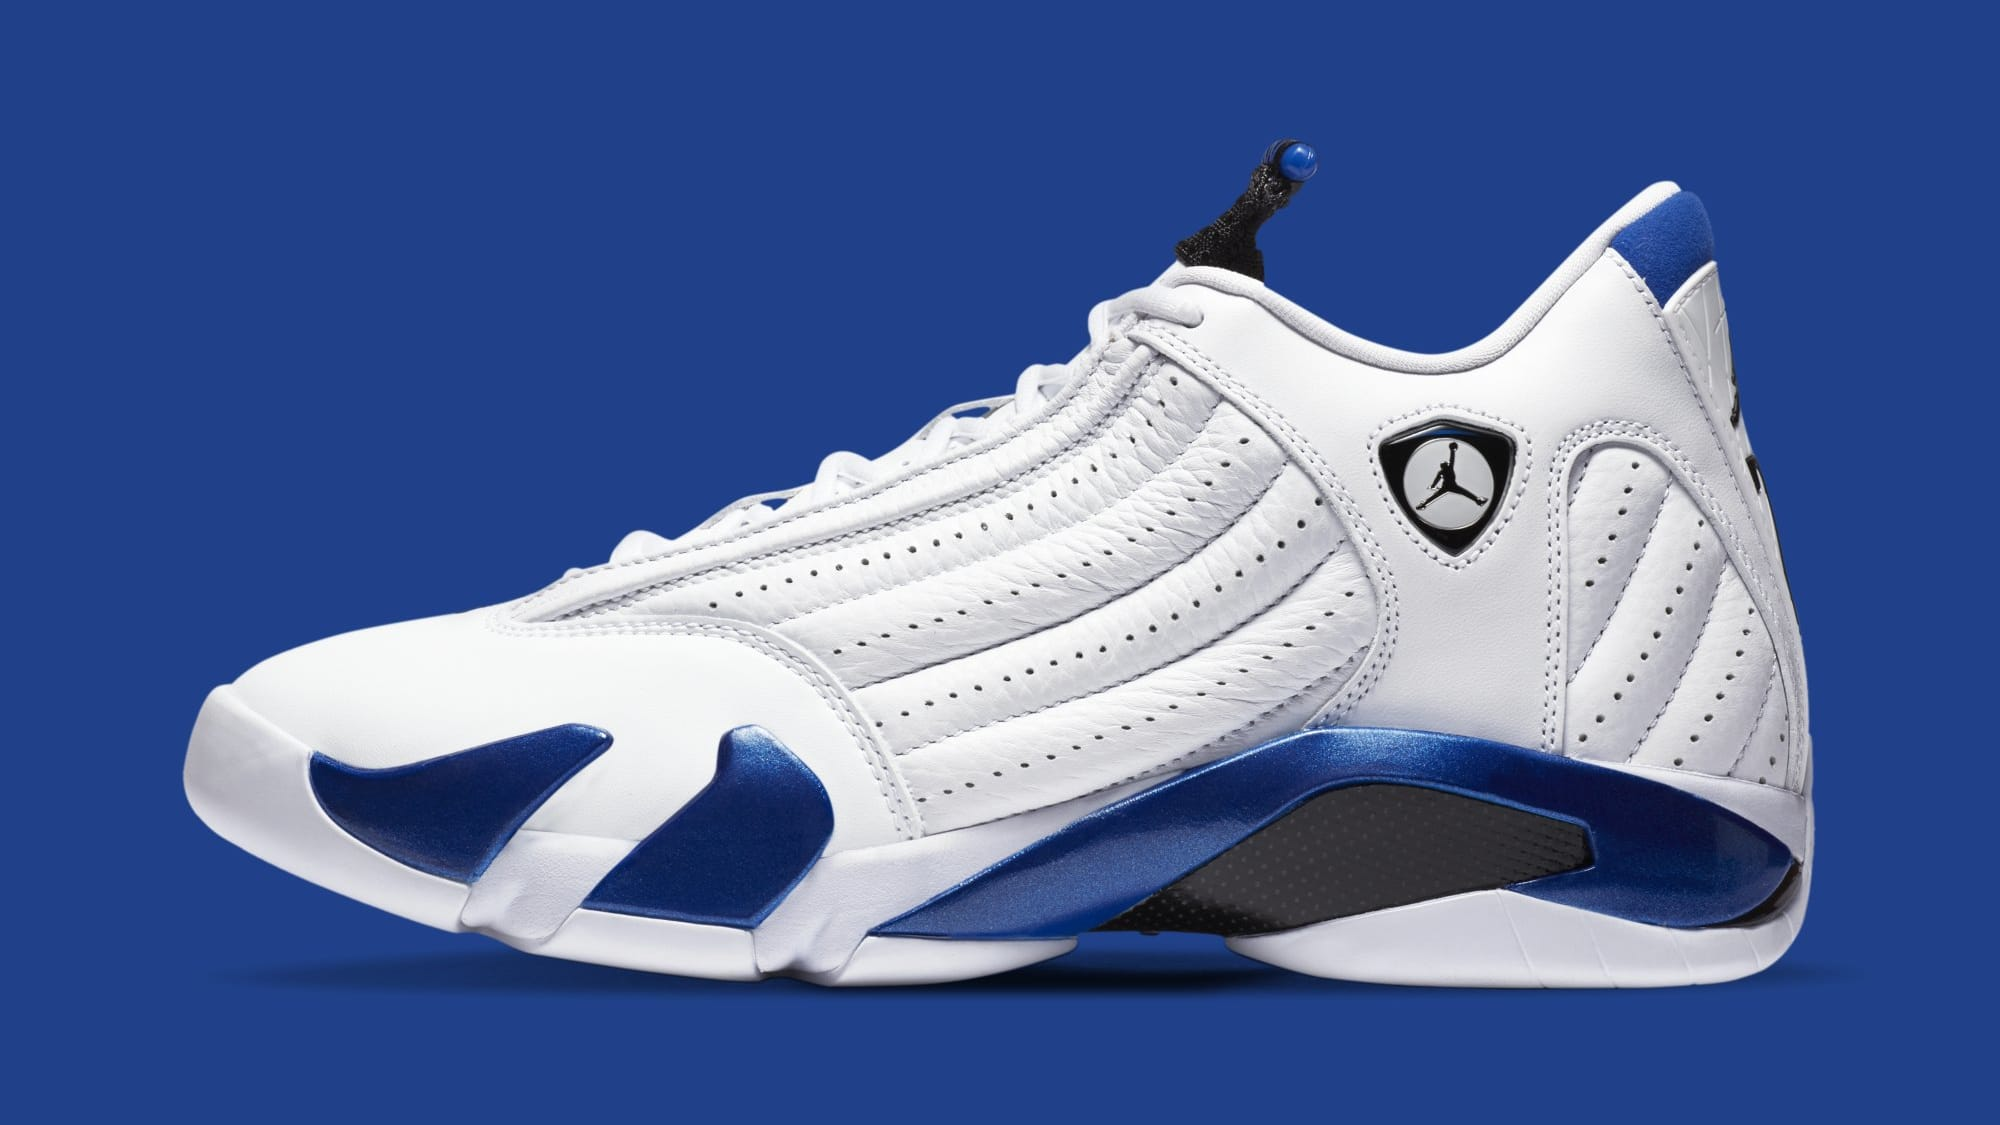 Air Jordan 14 Retro 'Hyper Royal' 487471-104 (Lateral)